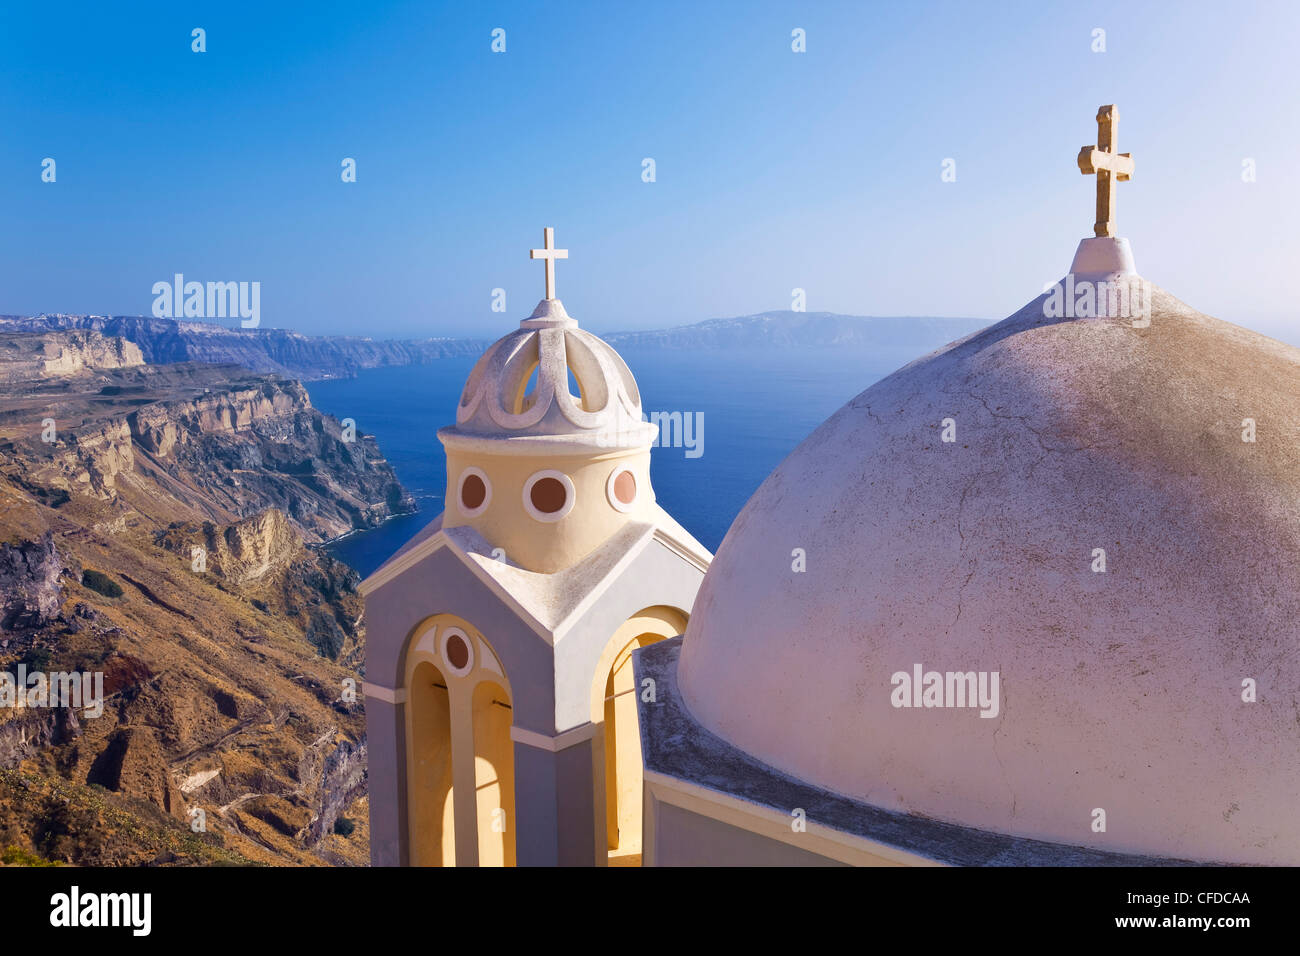 Église orthodoxe grecque à Fira, Santorin (thira), Cyclades, Mer Égée, îles grecques, Grèce, Photo Stock